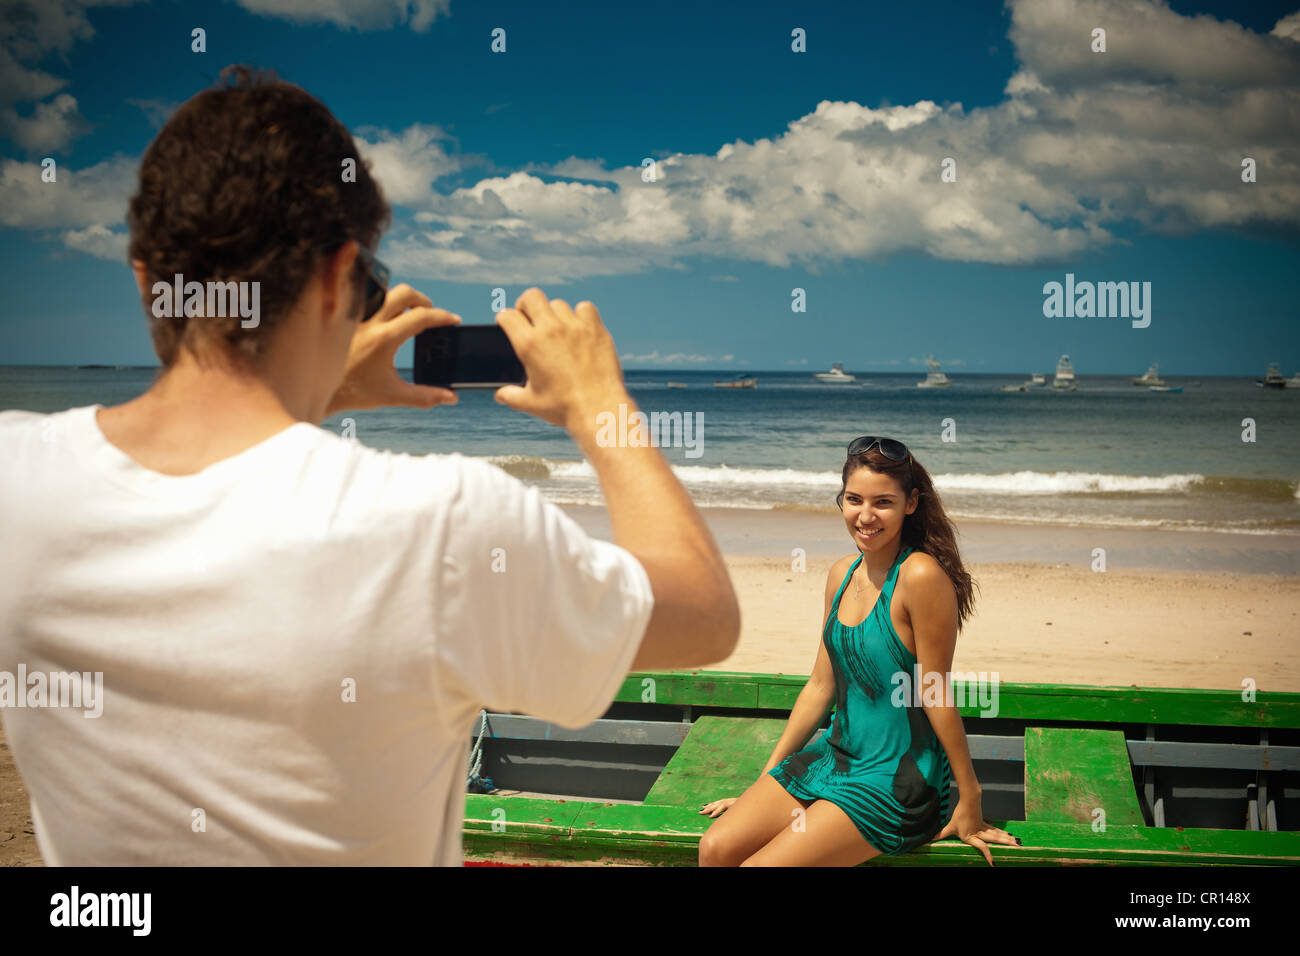 Man taking picture of girlfriend Banque D'Images